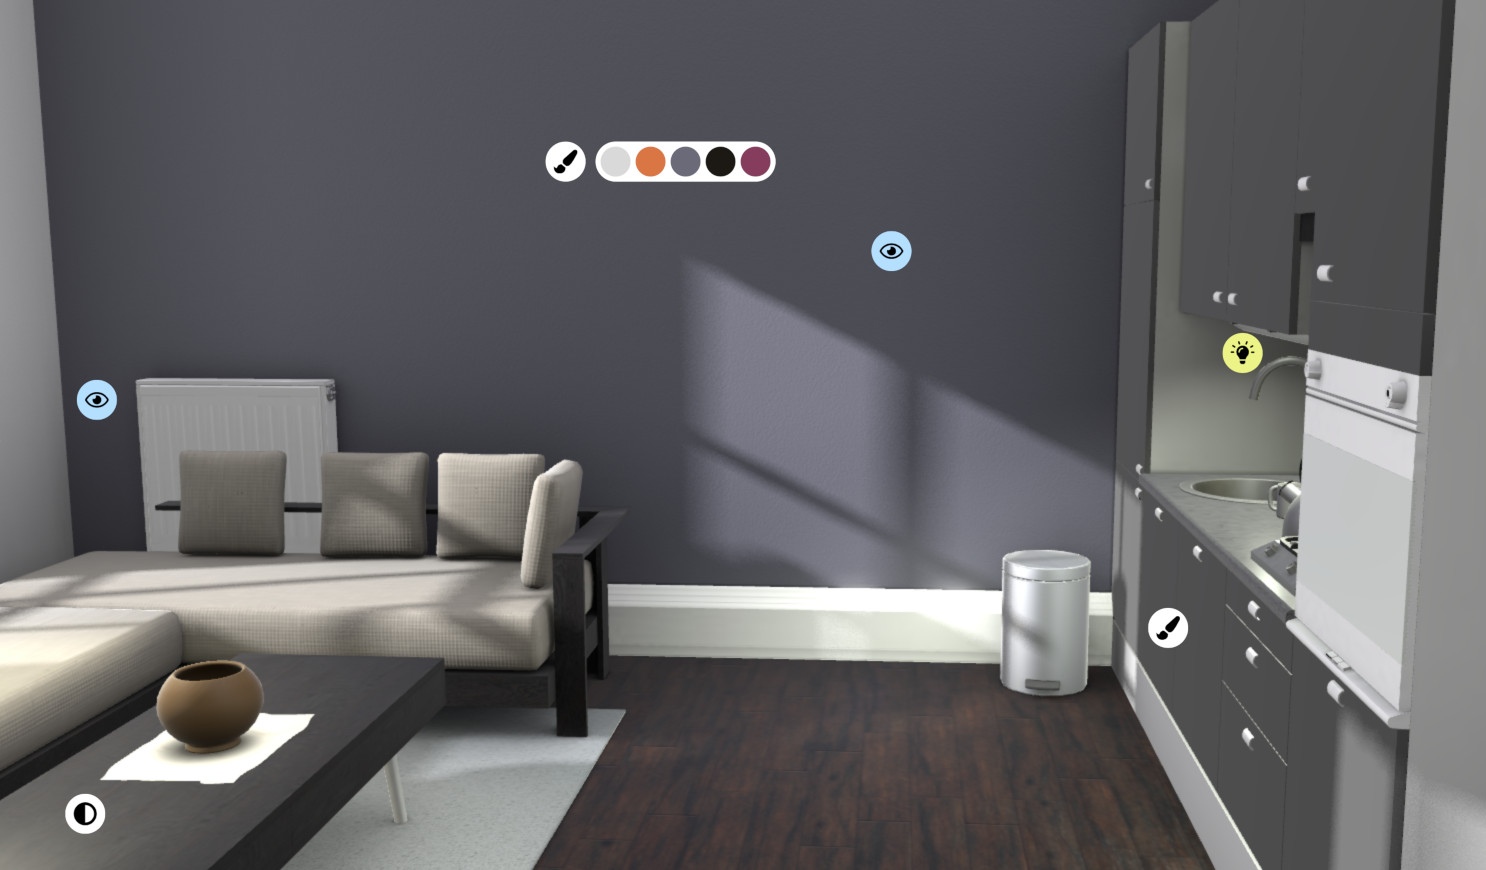 3ds Max version of the global illumination demo